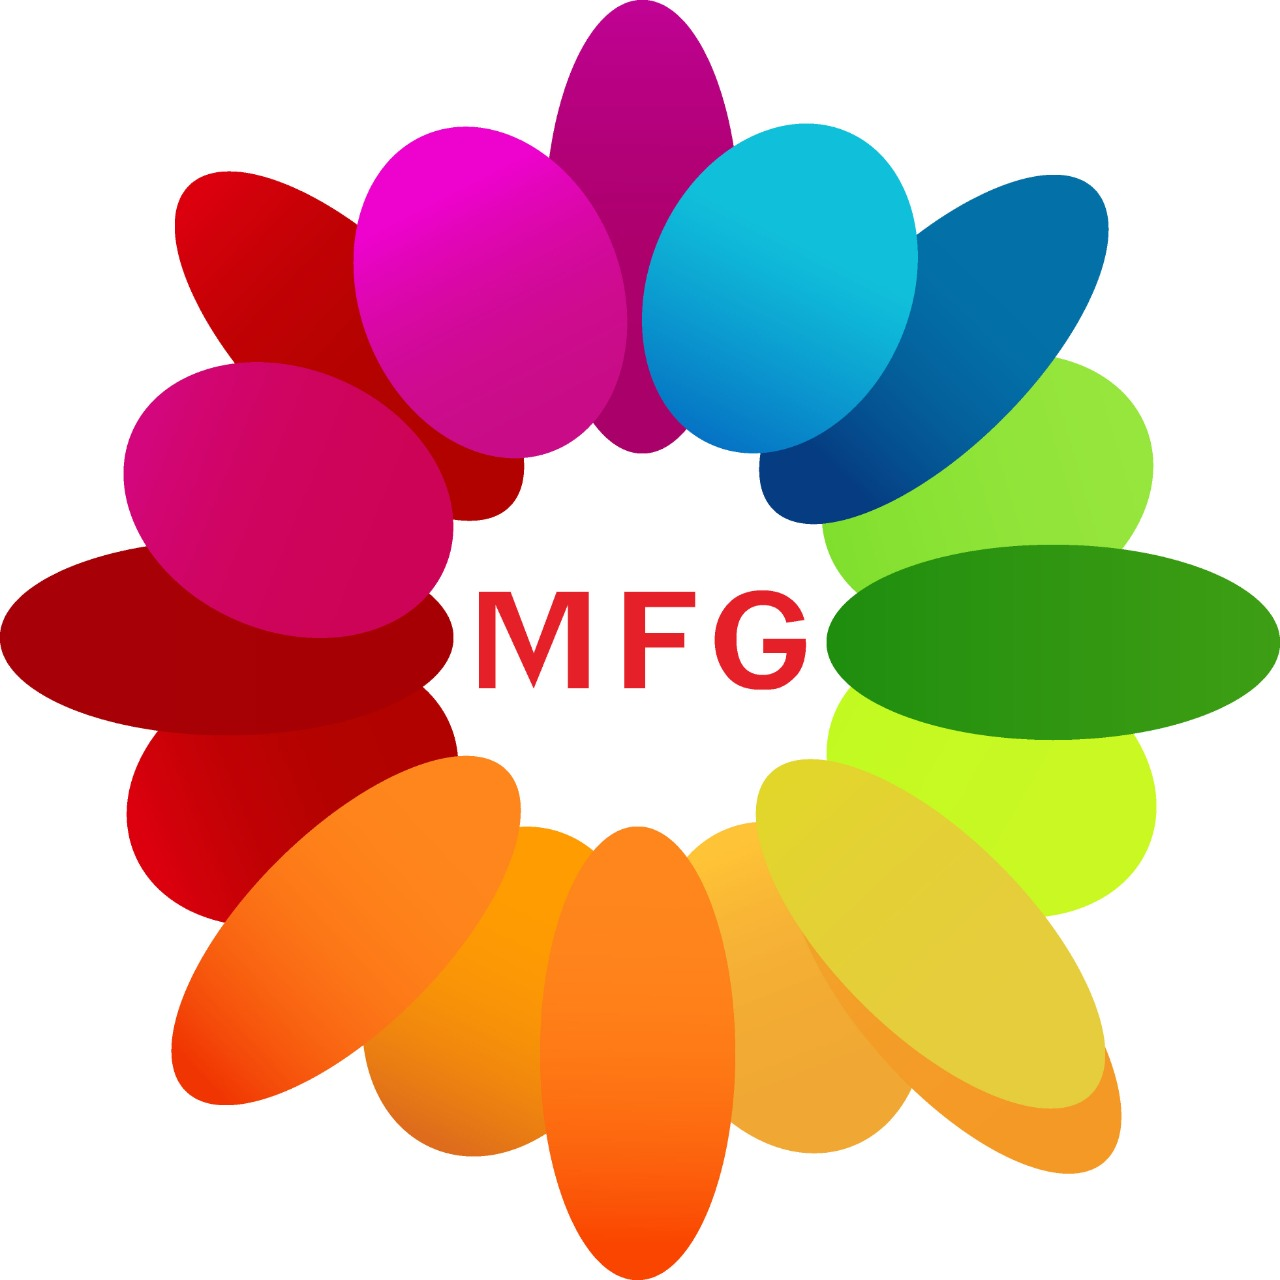 1 kg coffeewalnut premium qualitycake with bottle of red wine